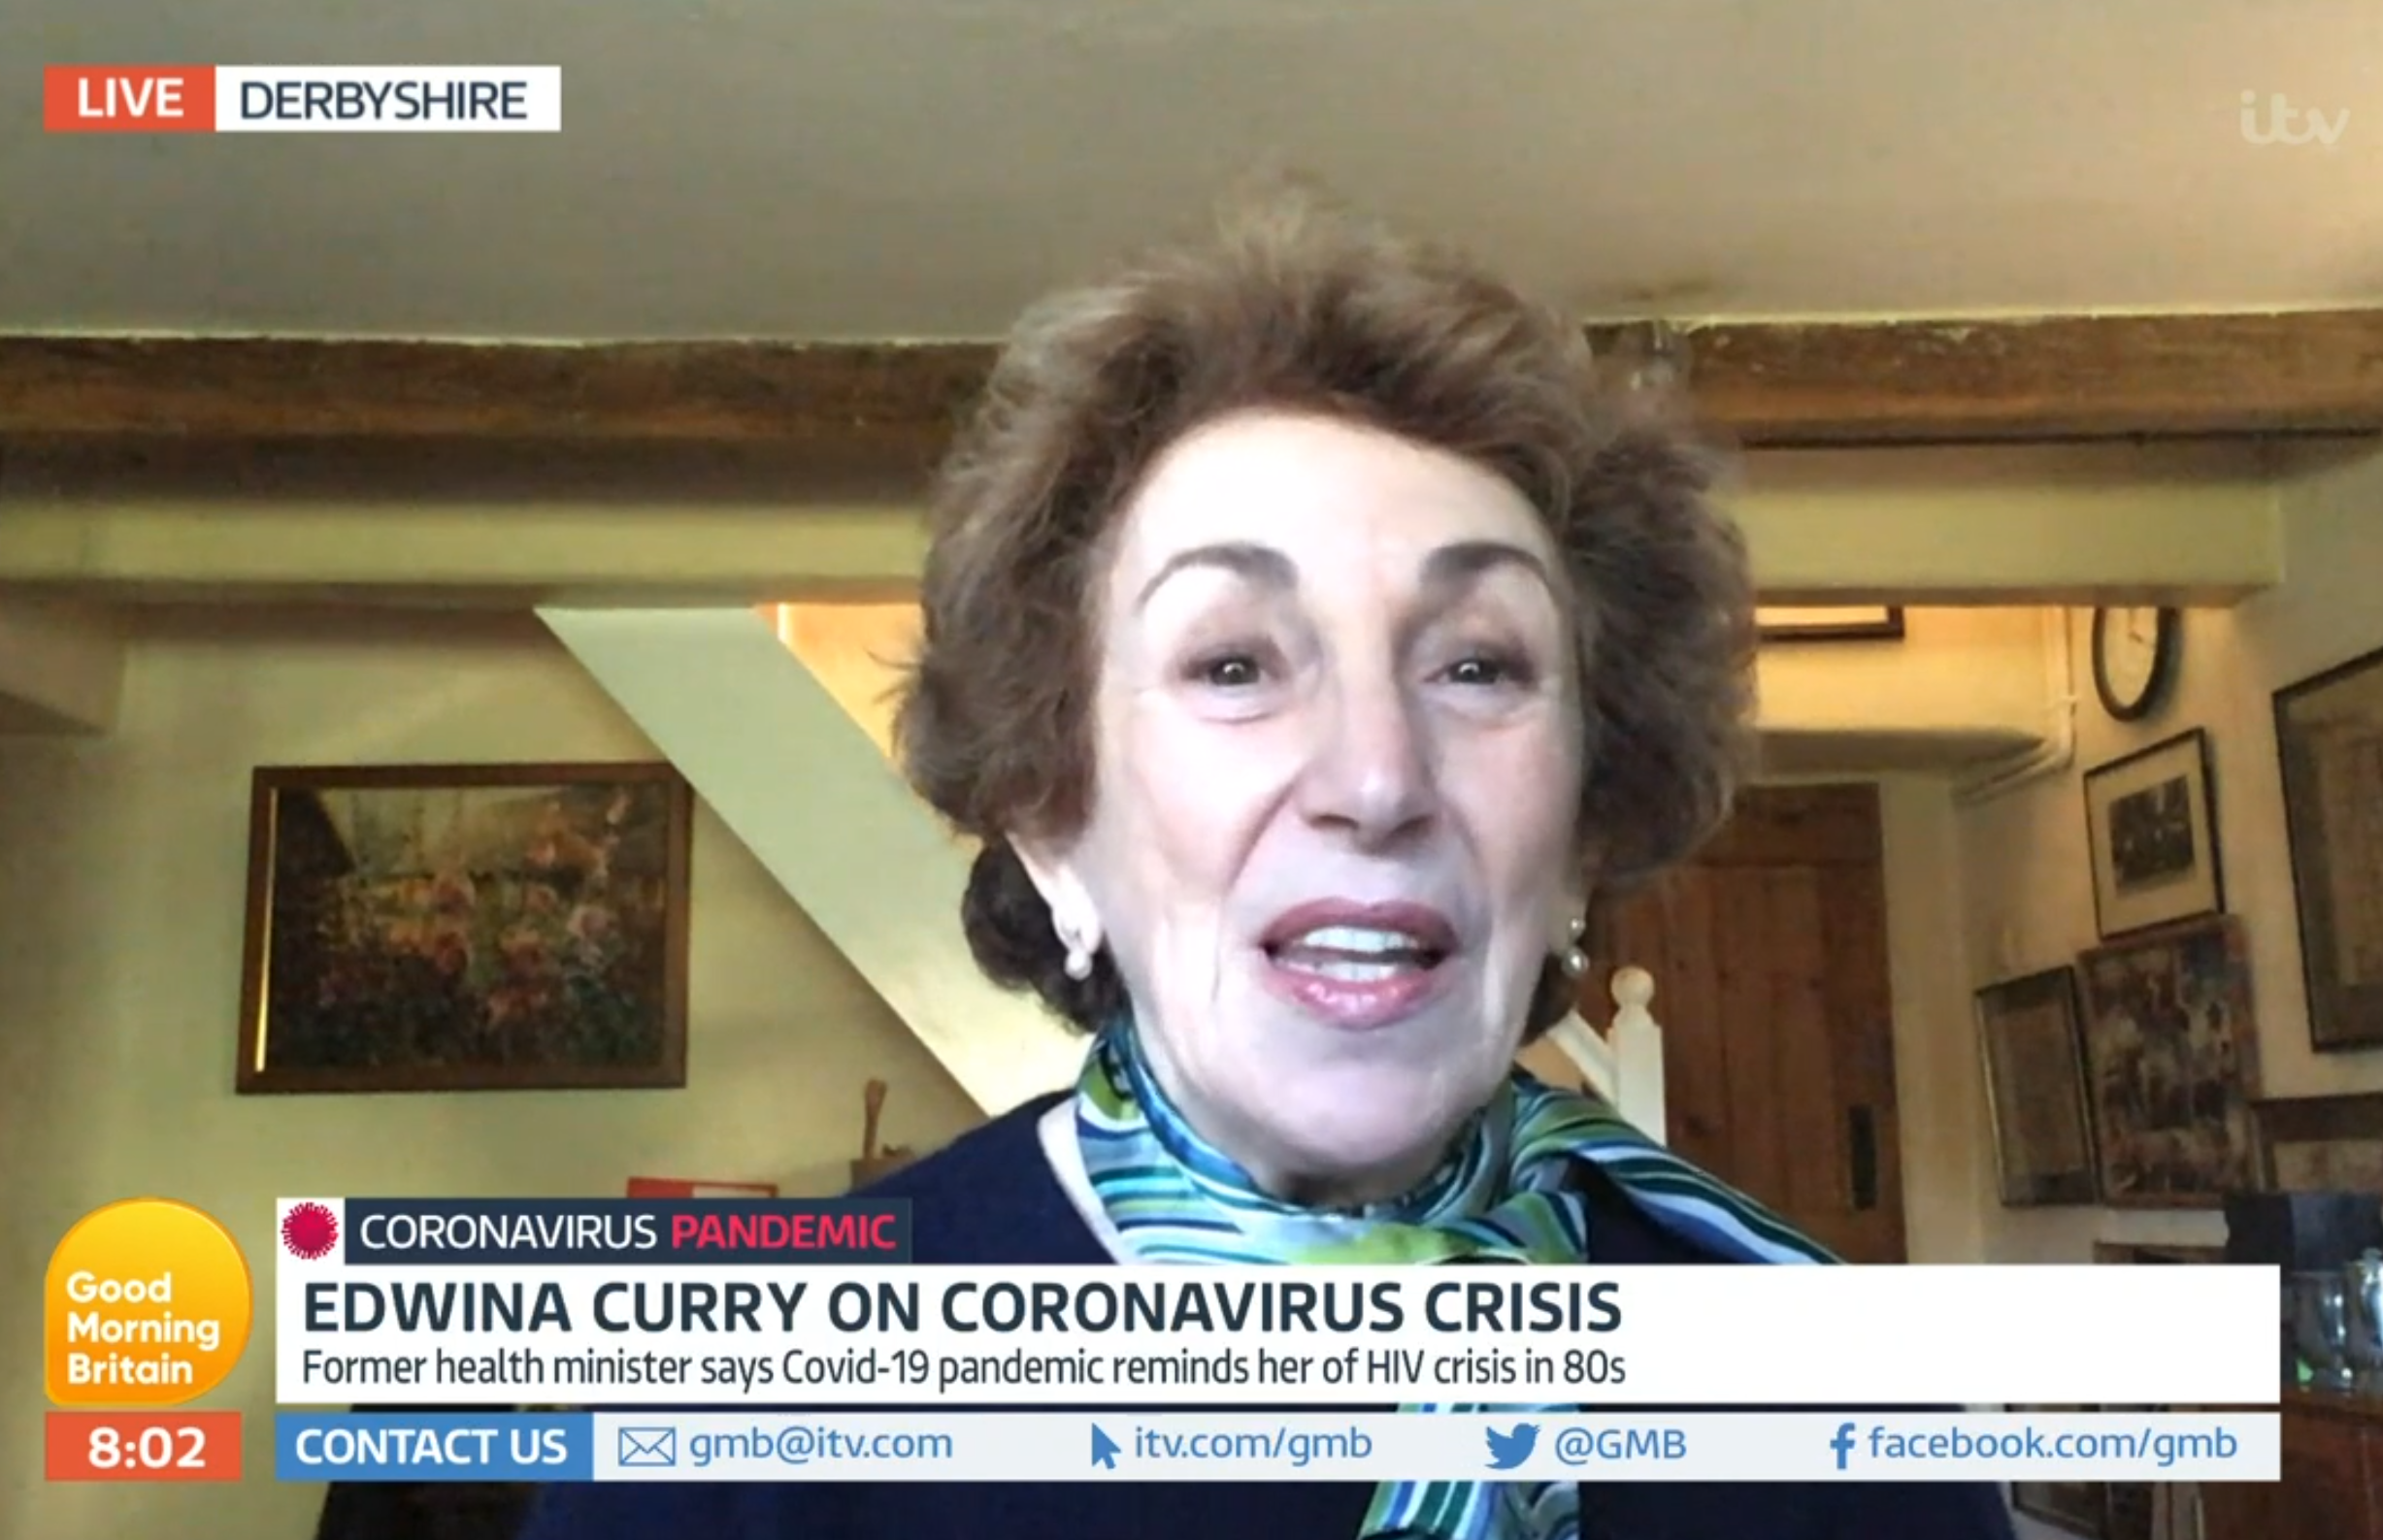 Edwina Currie shocks GMB hosts as half-dressed man is spotted in her living room